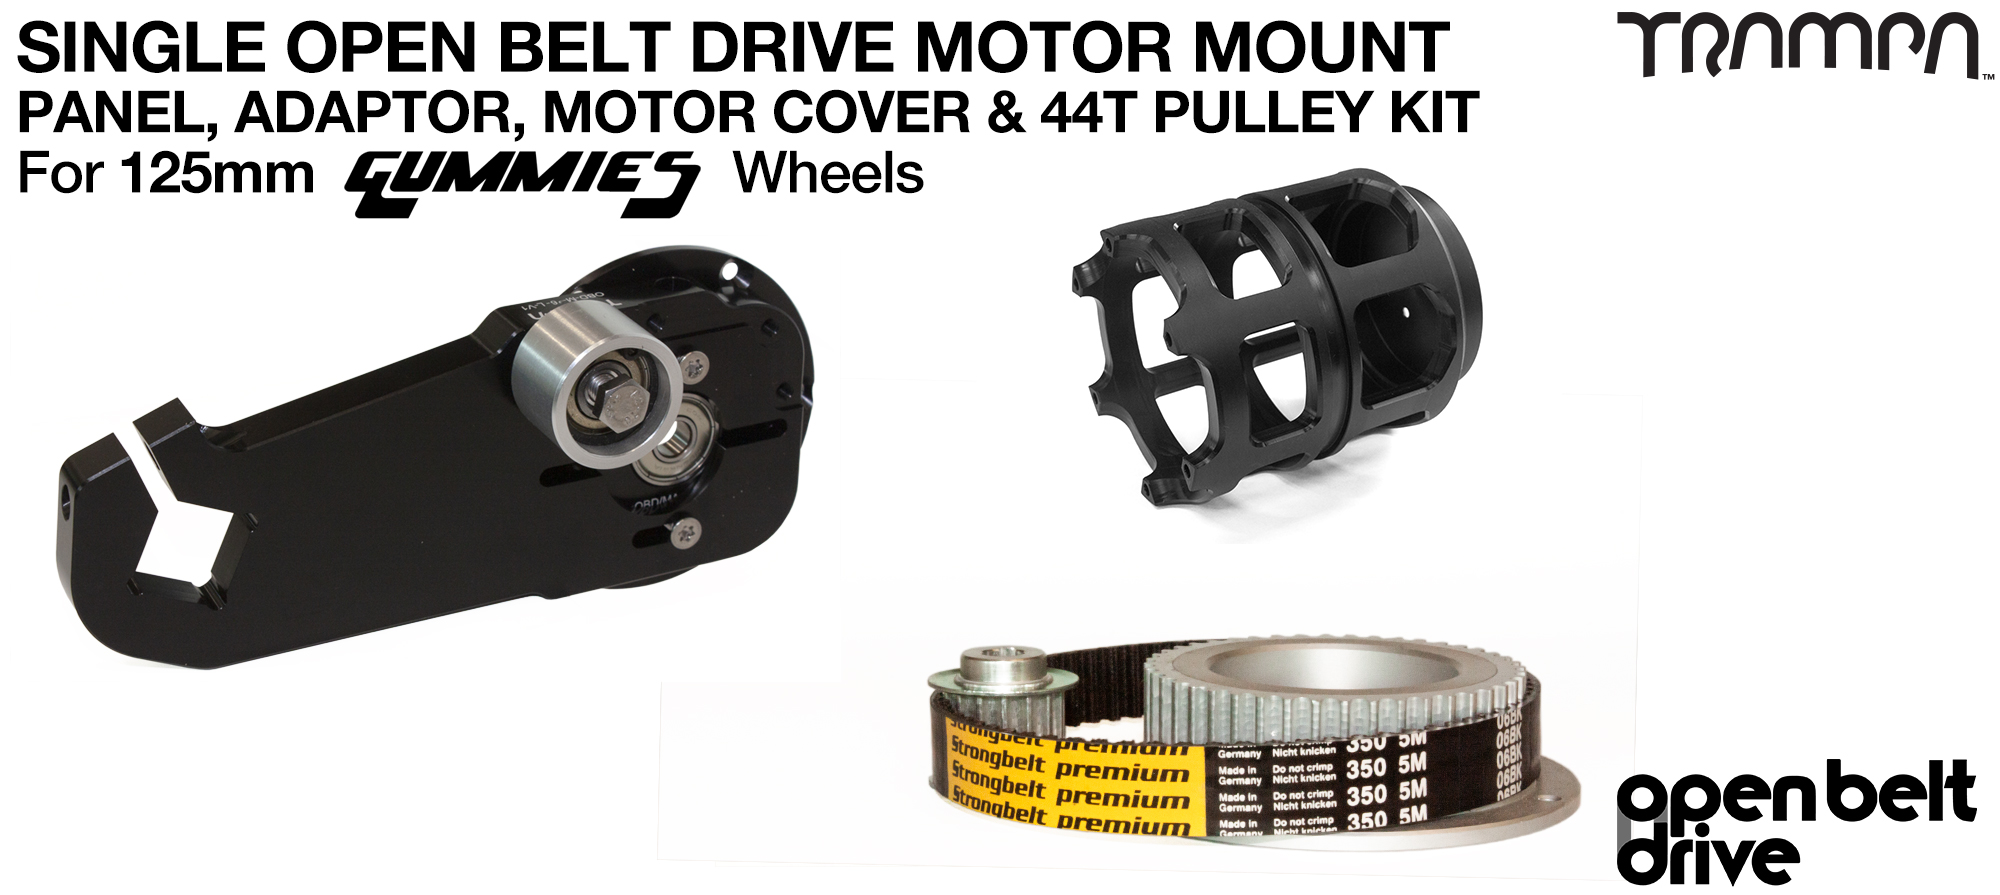 66T OBD Motor Mount with 44T Pulley kit & Motor Filters - SINGLE